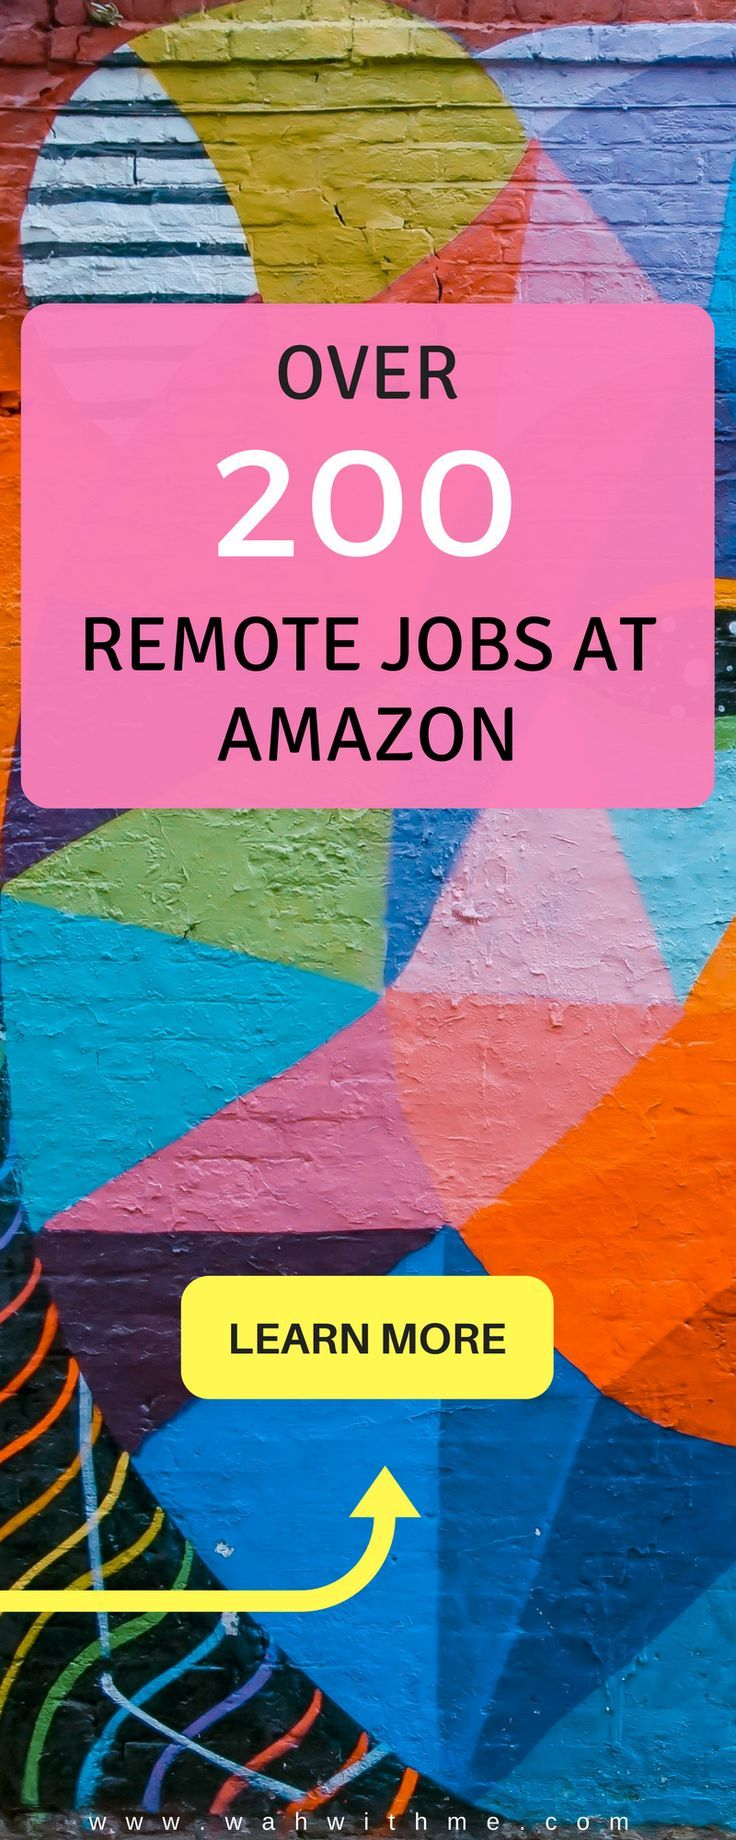 Amazon work from home jobs are popular in the work at home